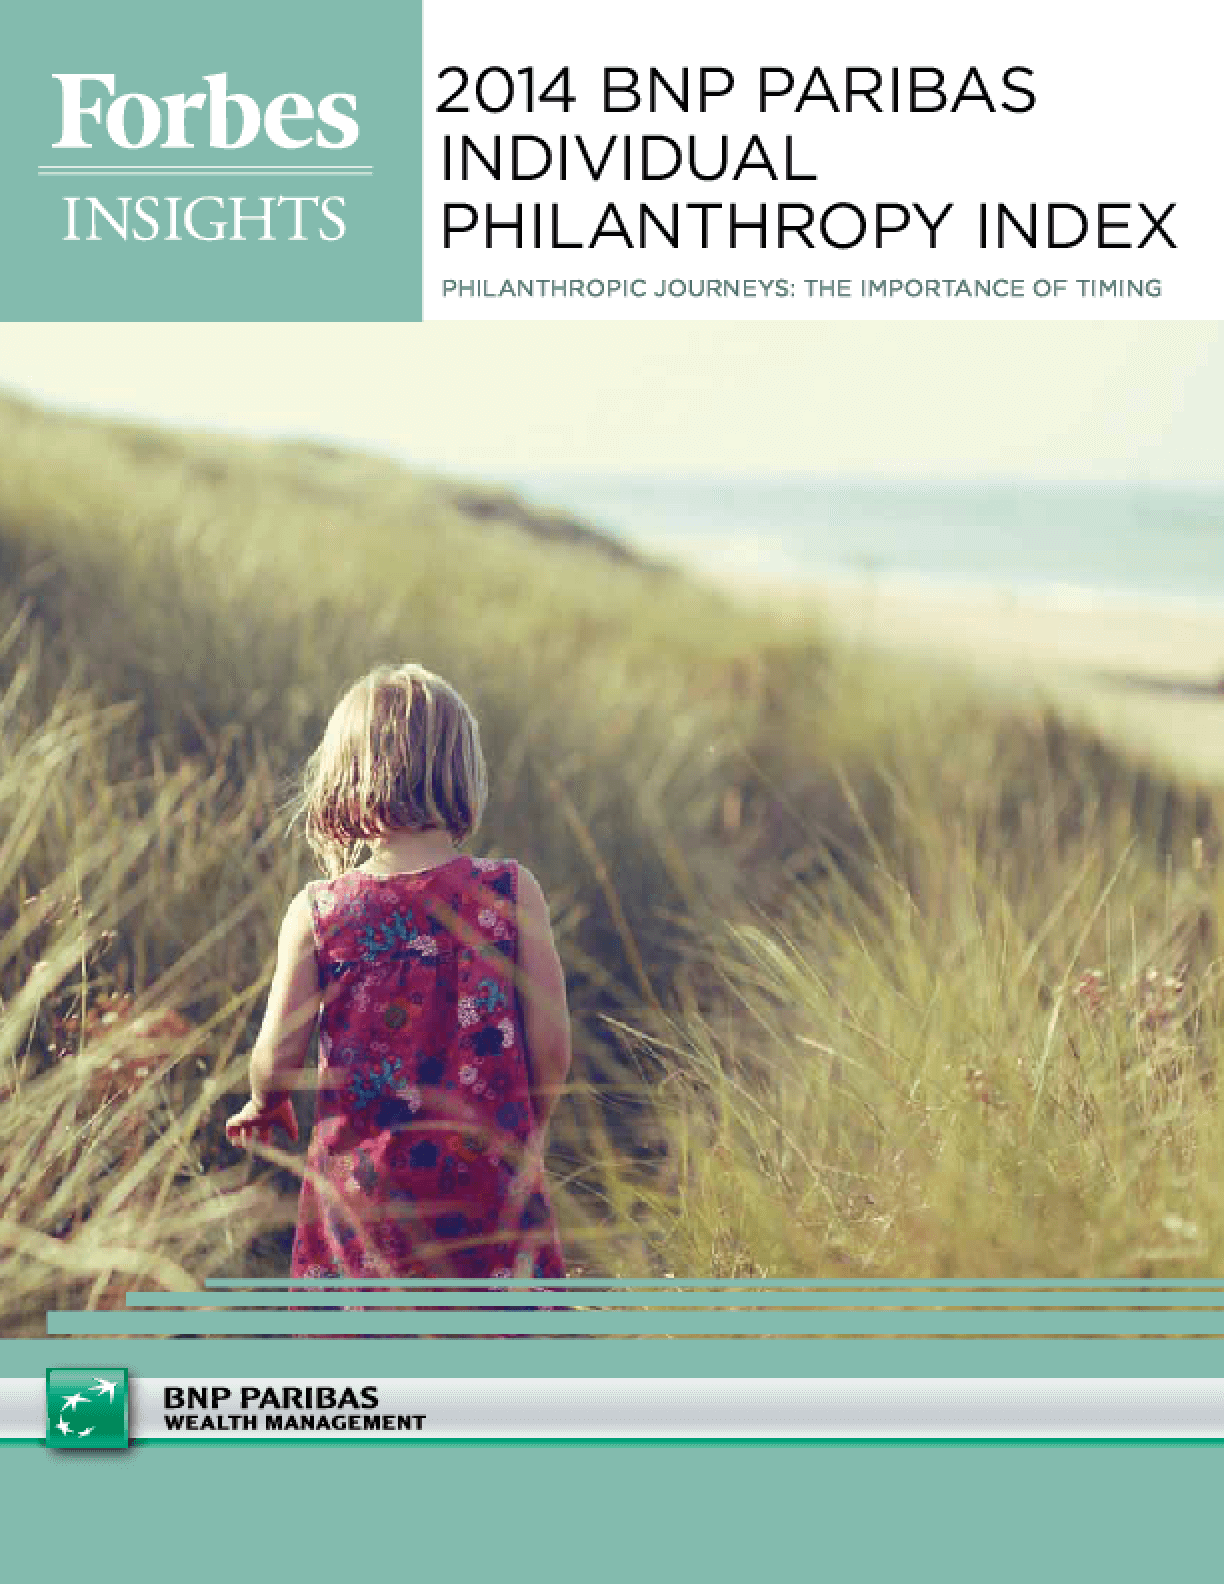 2014 BNP Paribas Individual Philanthropy Index